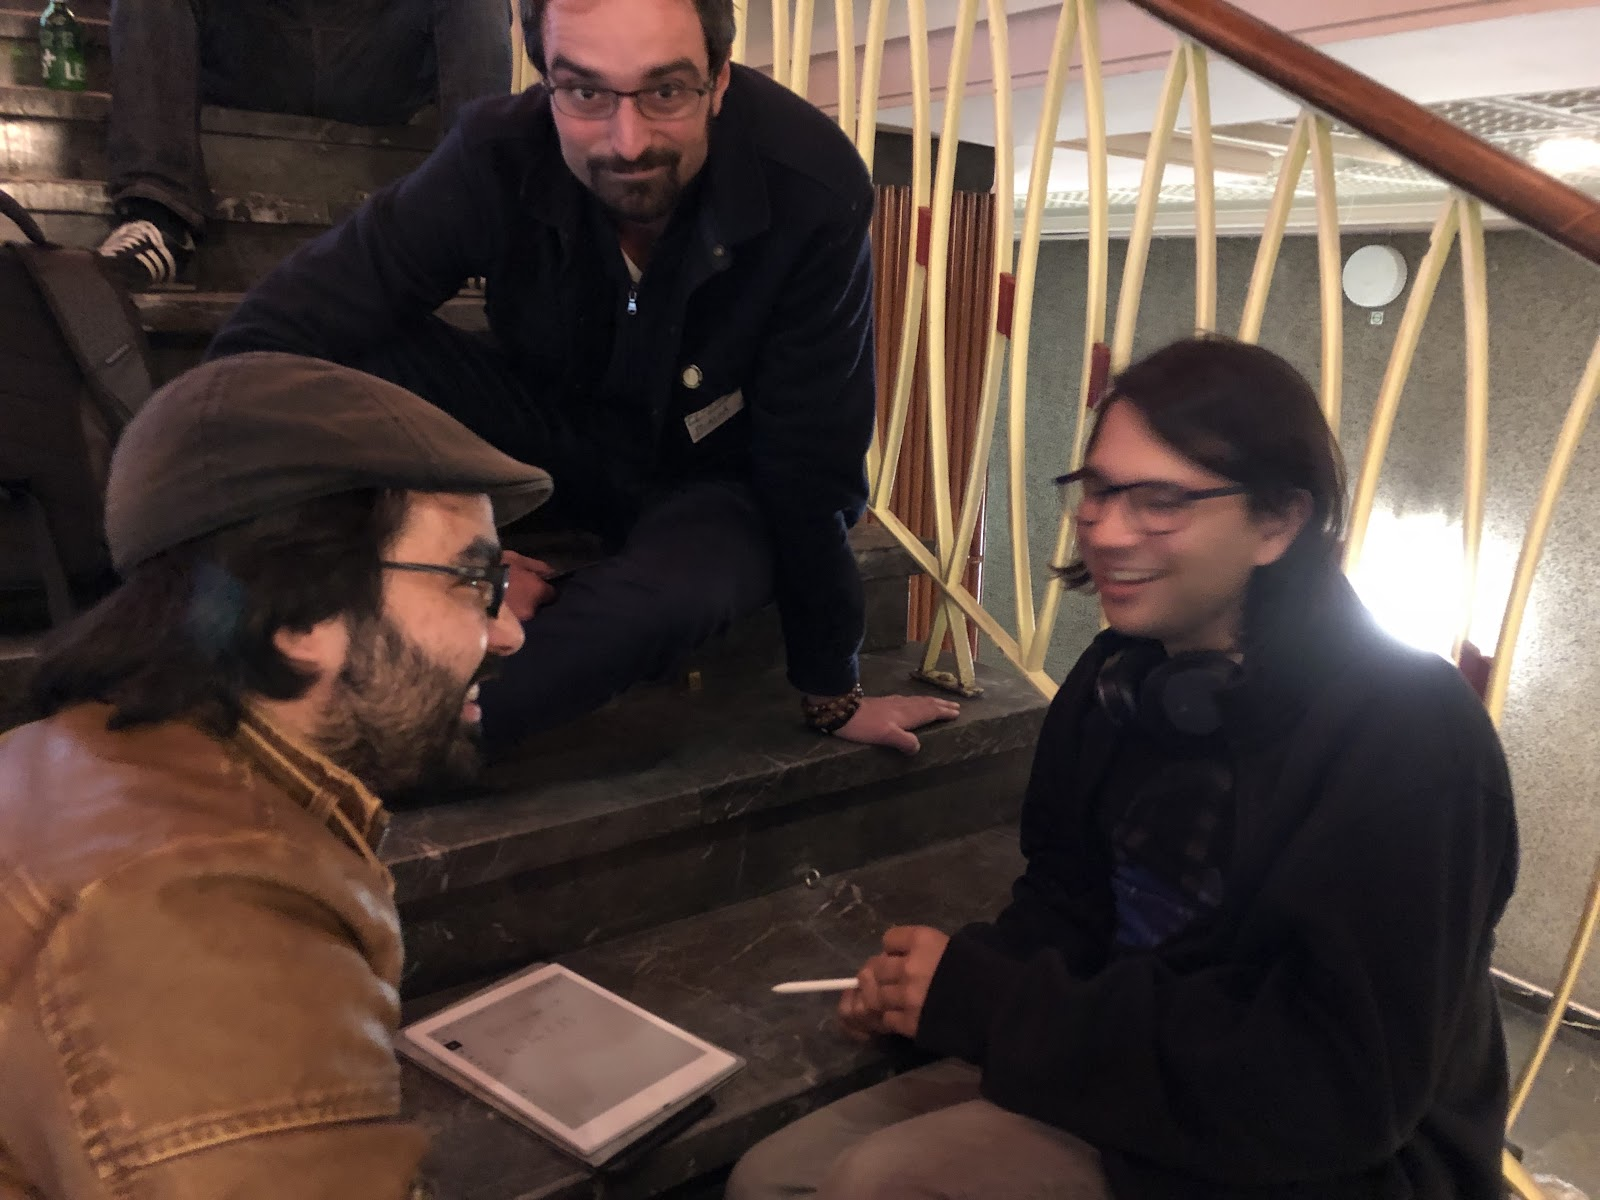 Vlad Zamfir (right) and pals